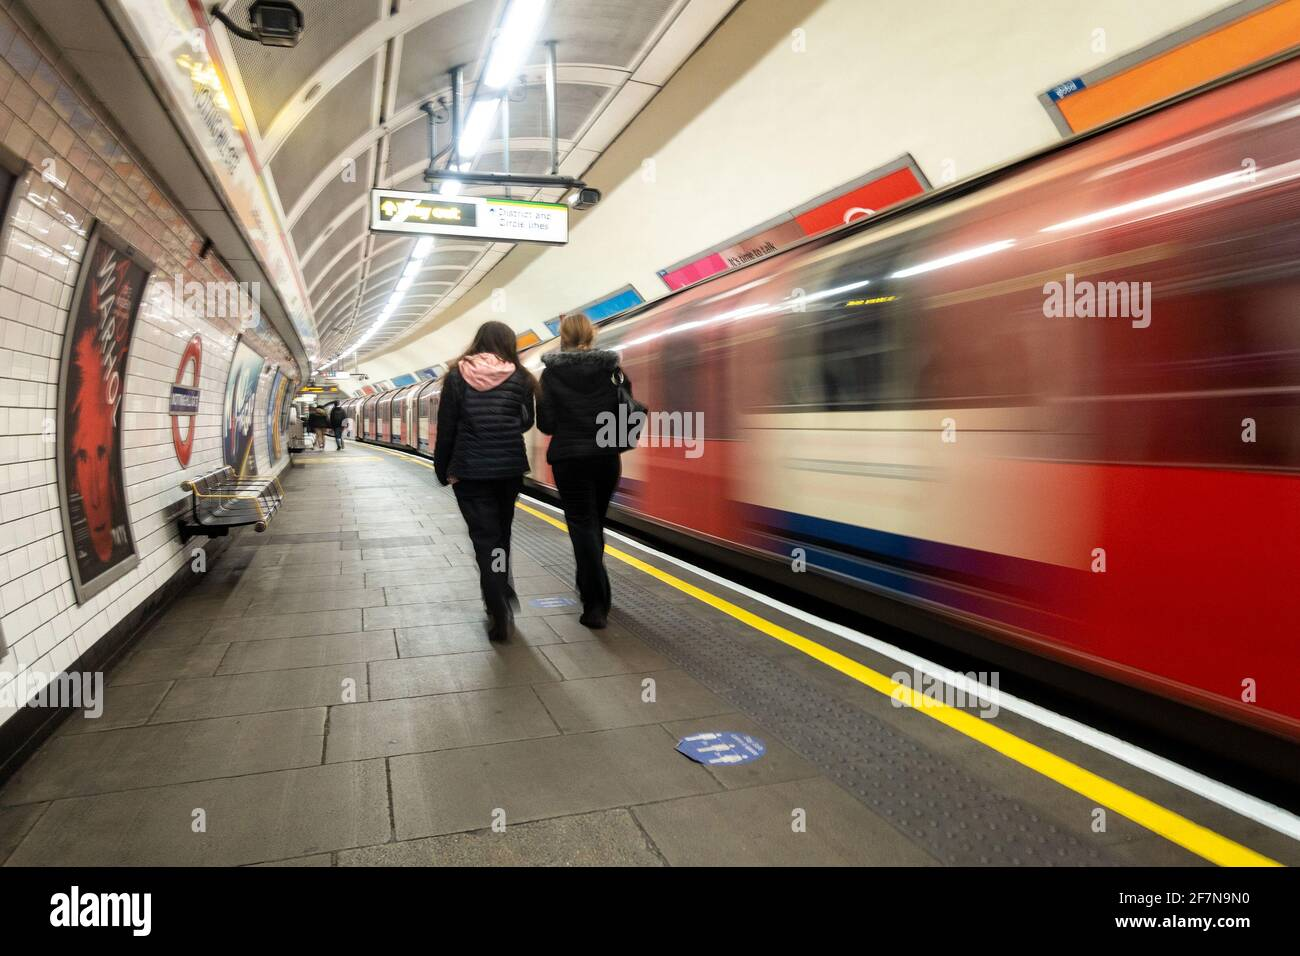 passengers-walk-along-the-platform-towards-the-exit-at-notting-hill-gate-london-underground-station-as-a-train-leaves-in-a-blur-2F7N9N0.jpg